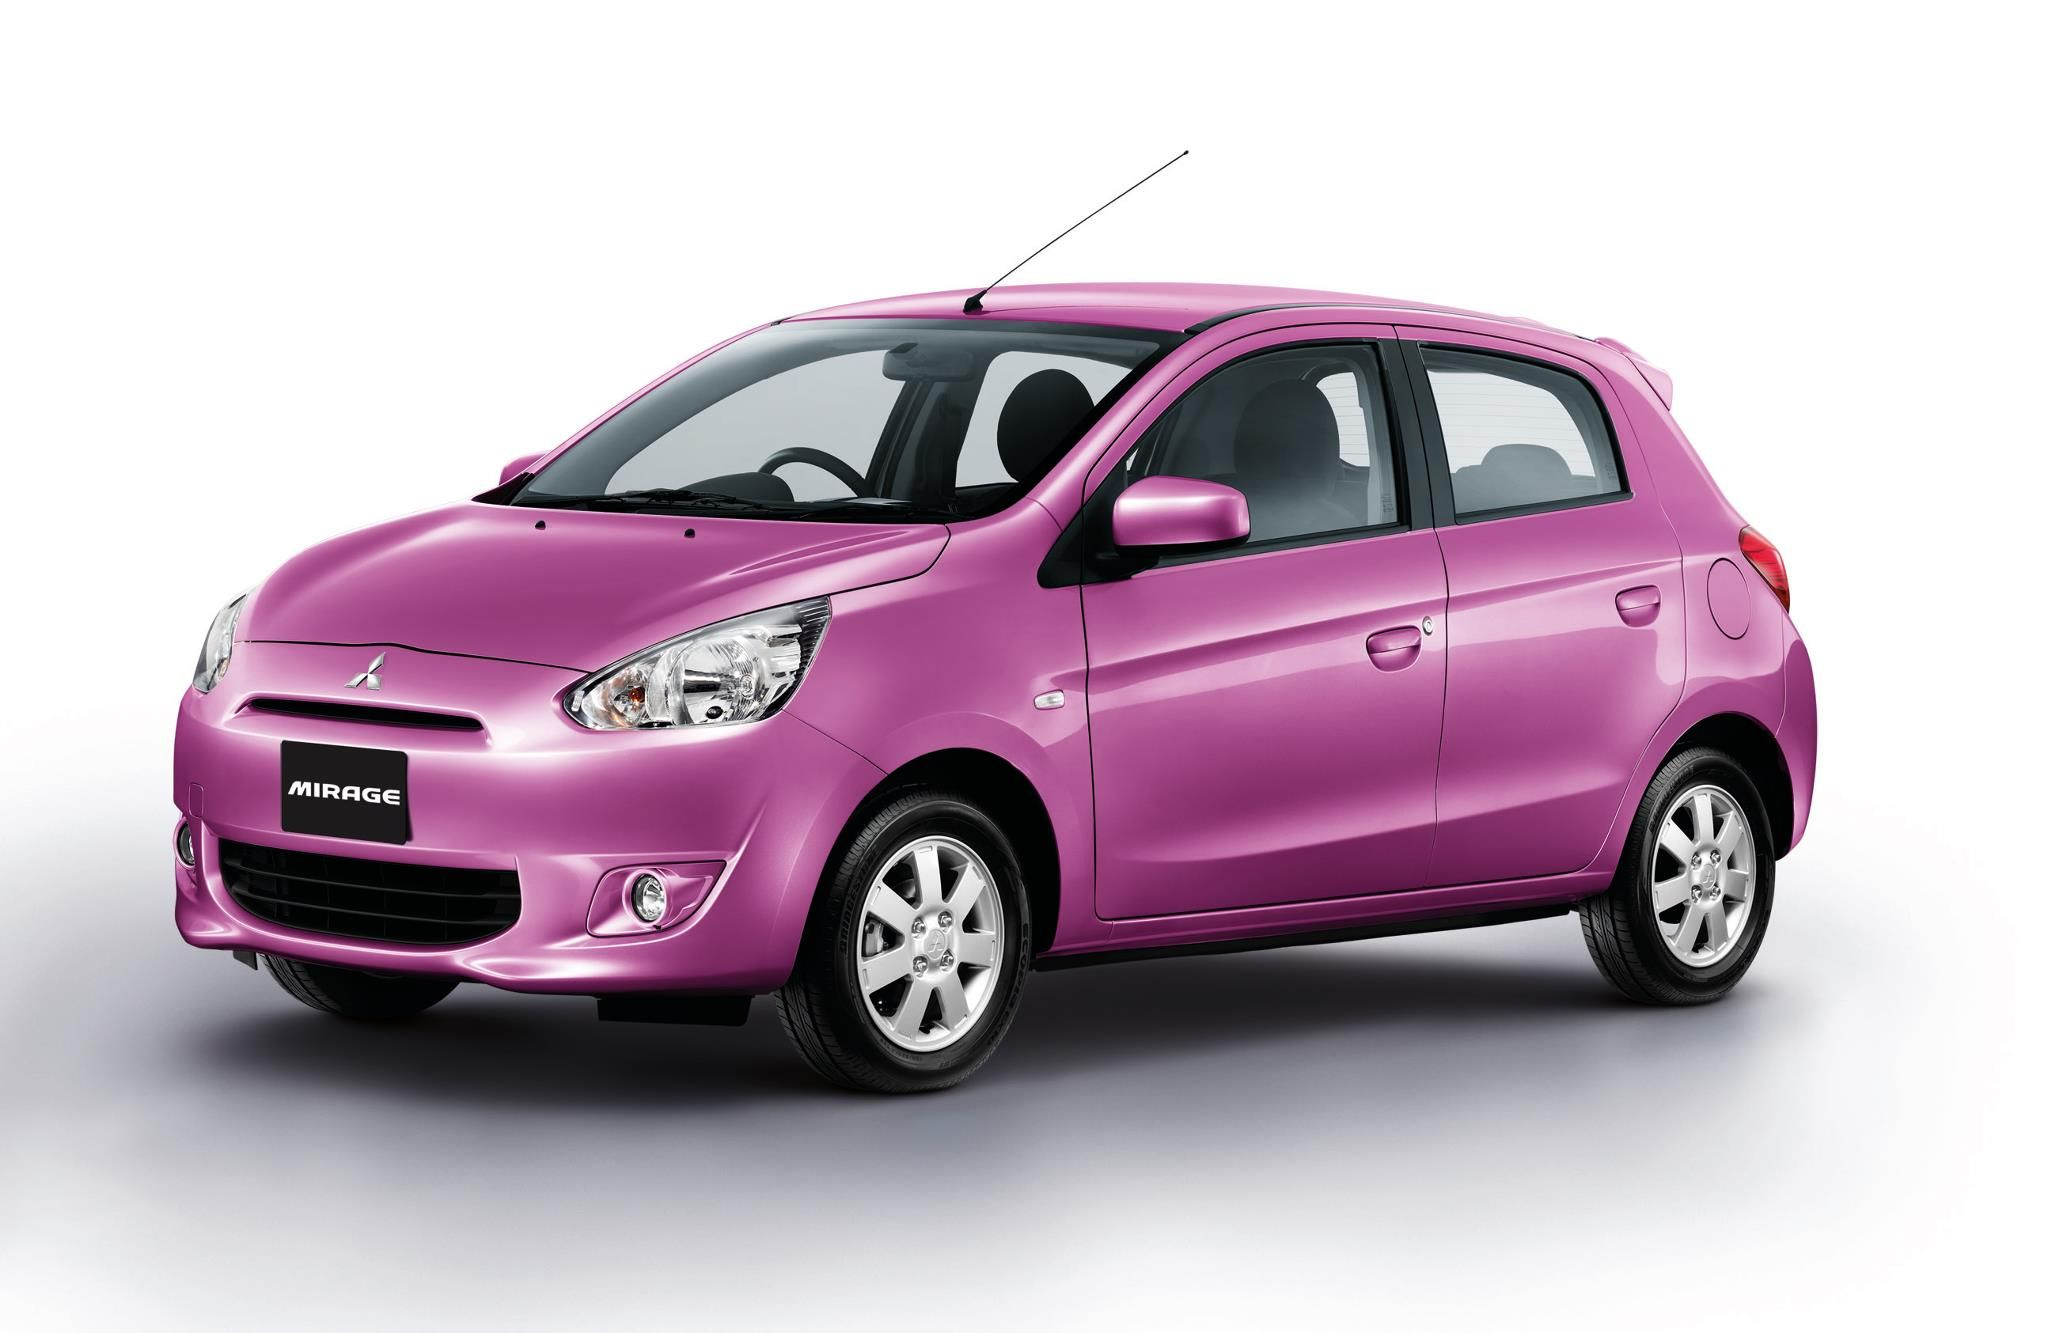 Mitsubishi Mirage Bloom Edition Small Cars Wallpapers